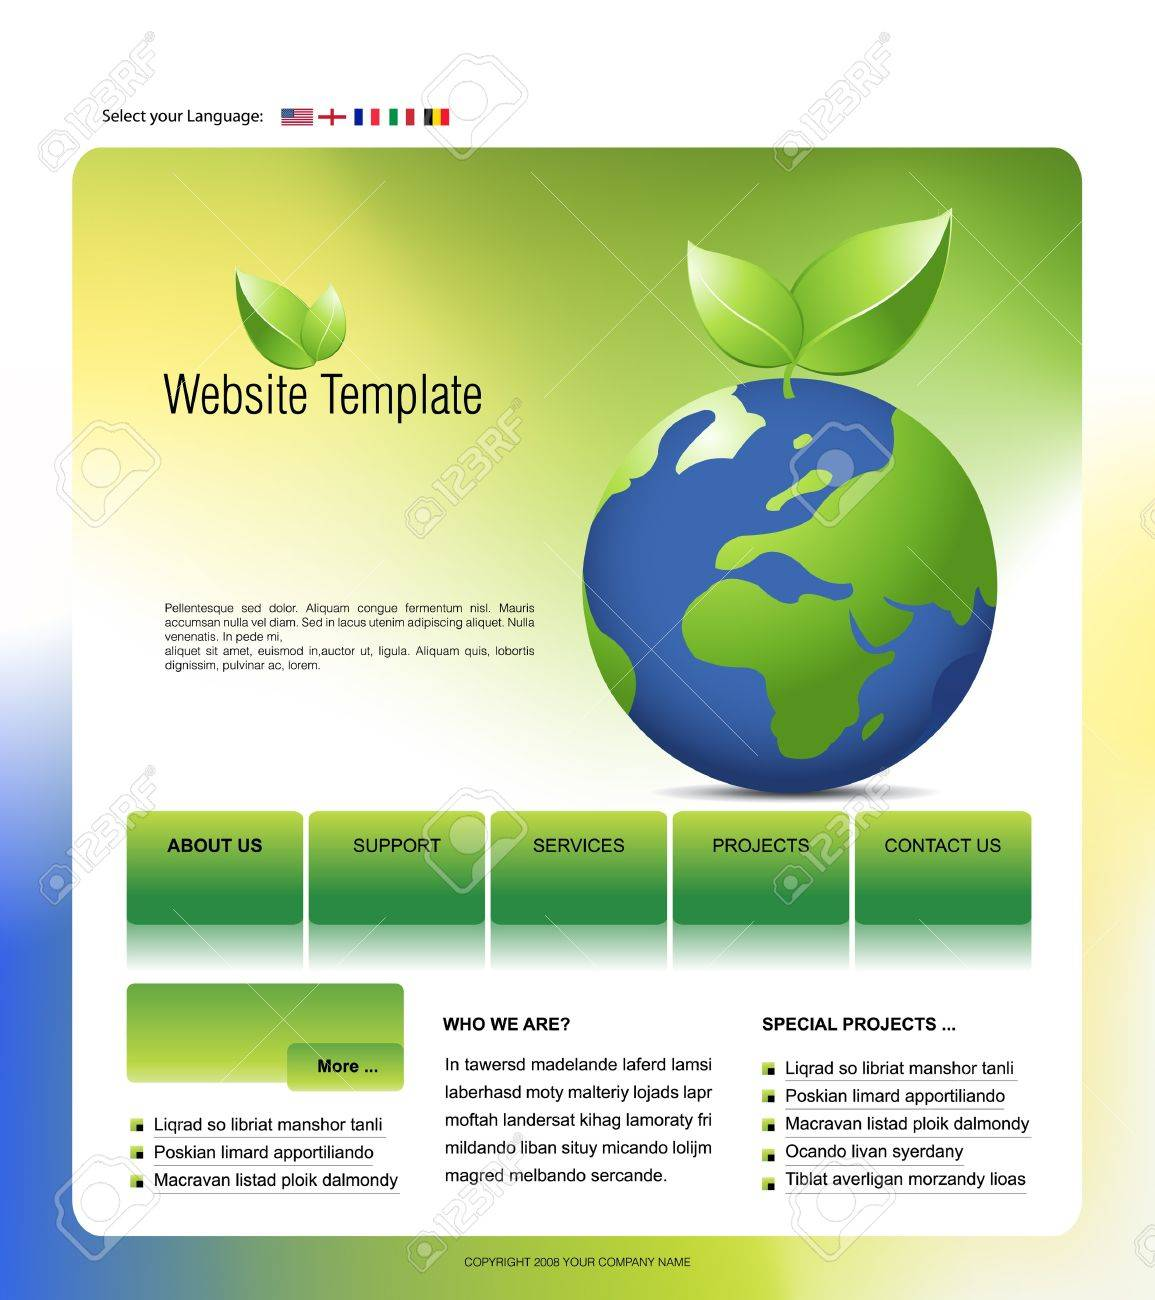 Plantilla De Sitio Web, Fácil De Usar En Adobe Photoshop, Flash O ...